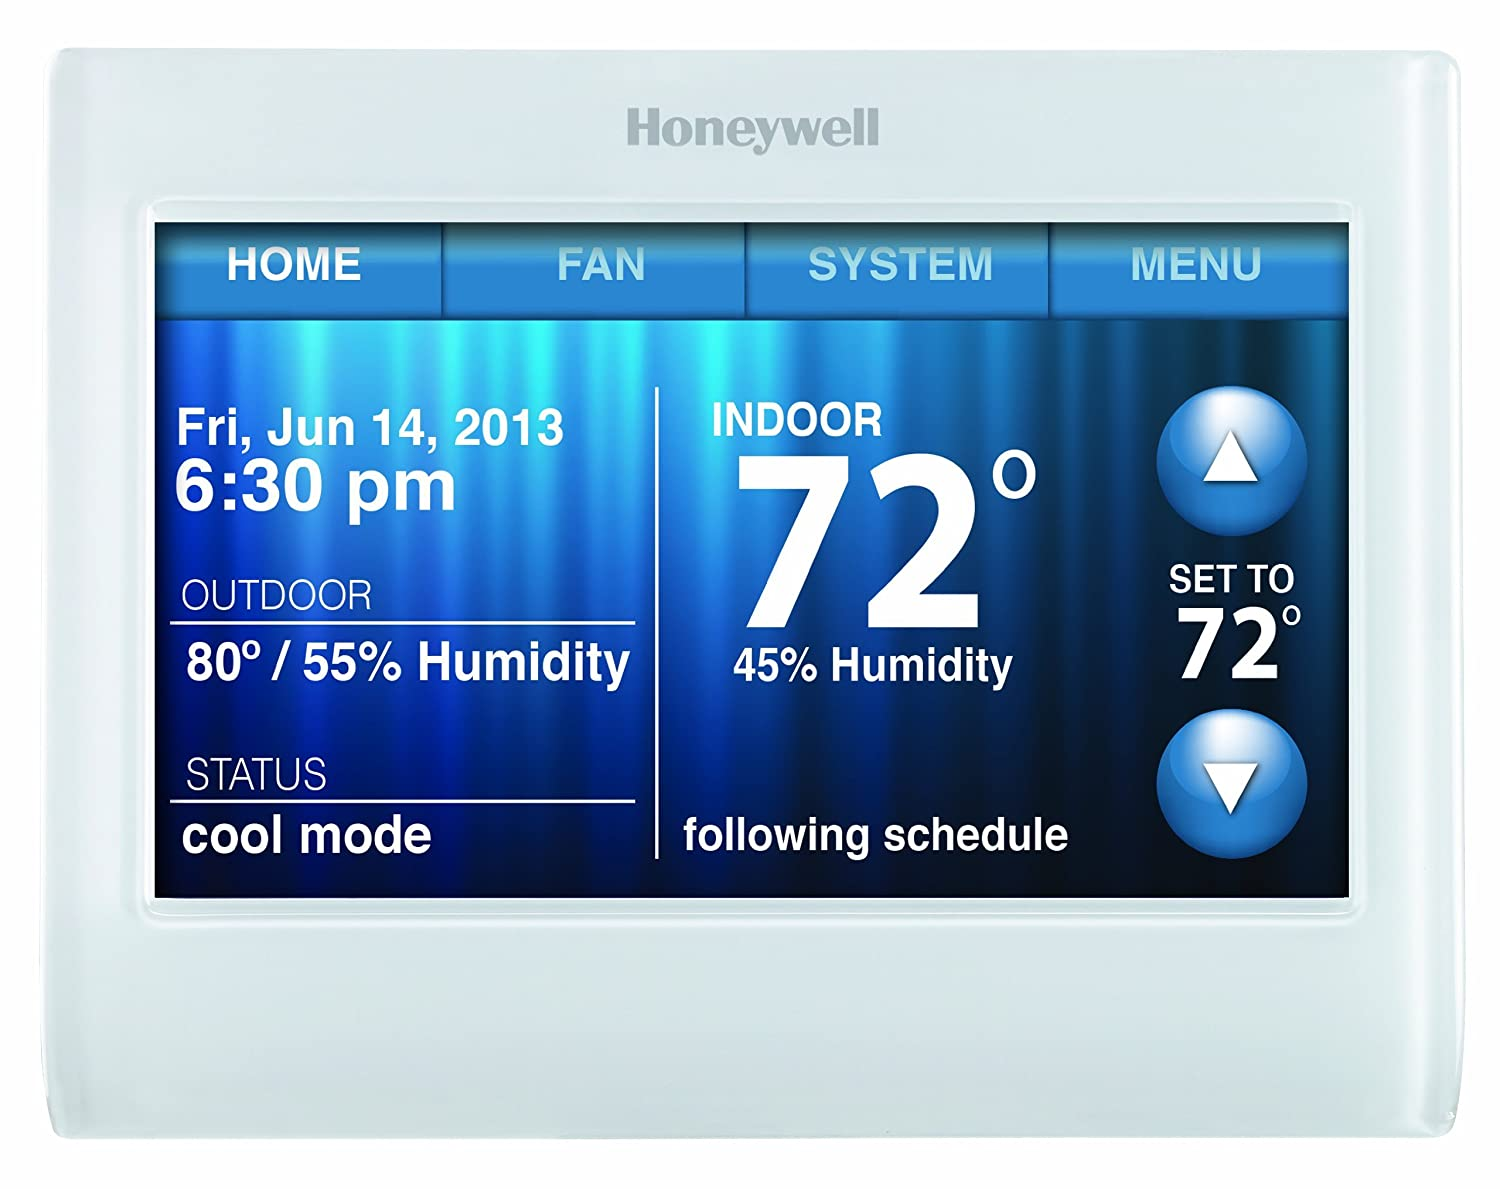 """Honeywell TH9320WF5003 Wi-Fi 9000 Color Touch Screen Programmable Thermostat, 3.5 x 4.5 Inch, White, 'Requires C Wire"""" (Certified Refurbished)"""